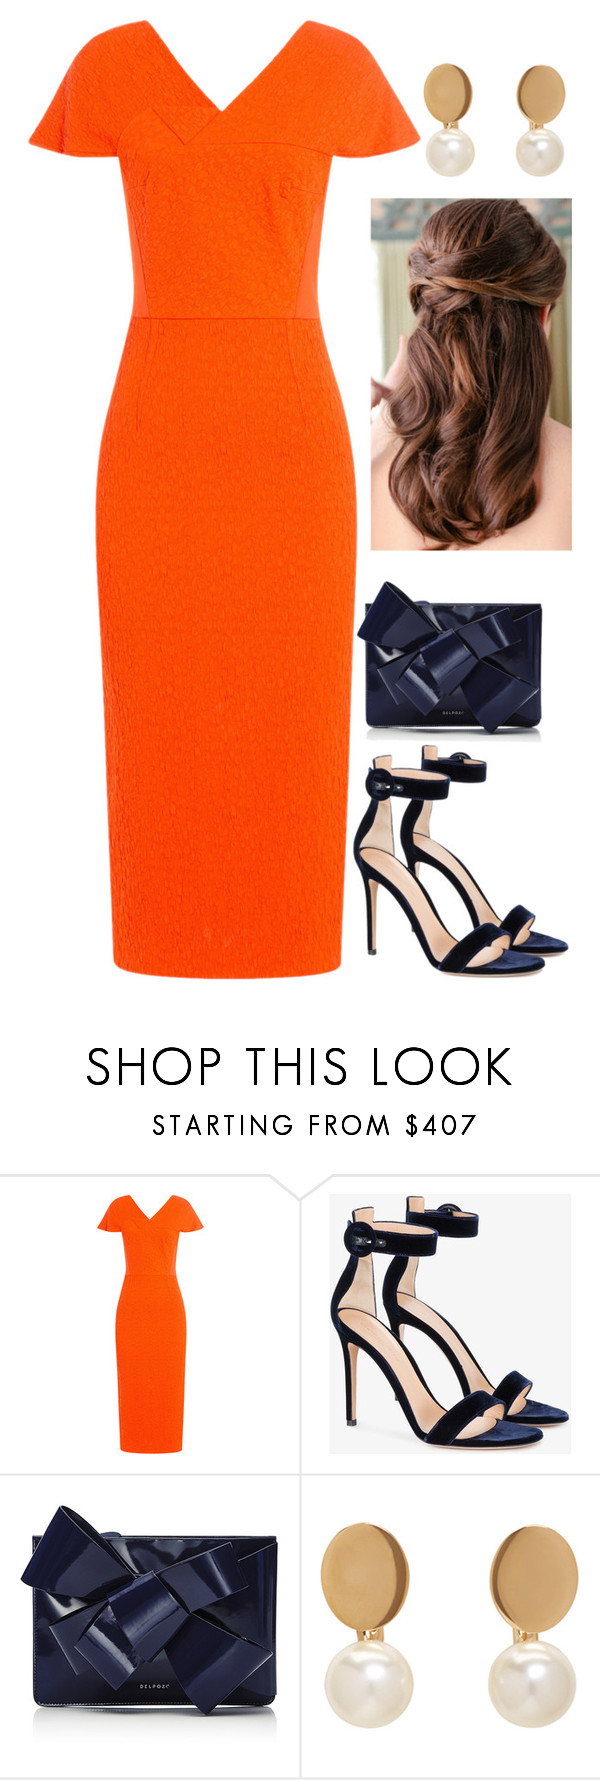 """Untitled #4133"" by injie-anis ❤ liked on Polyvore featuring Roland Mouret, Gianvito Rossi, Delpozo and Chloé"